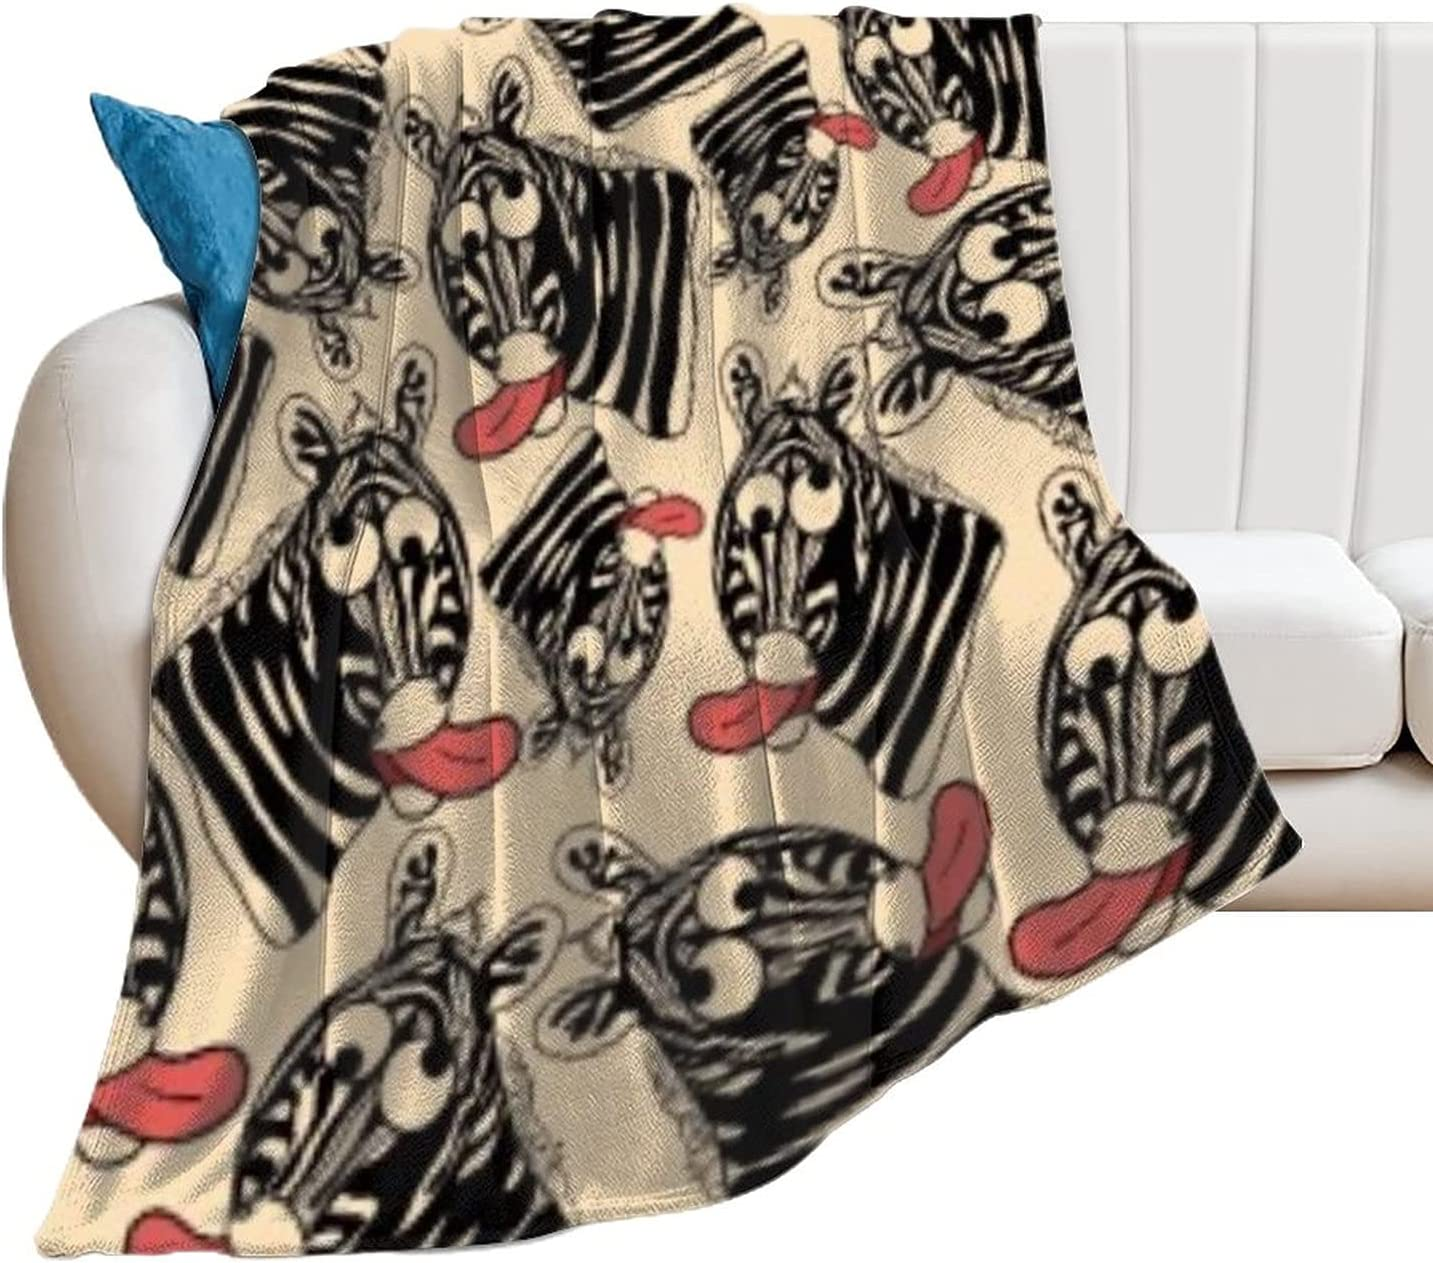 Incredible Zebra Blanket Anime Manufacturer regenerated Safety and trust product Blankets Soft Fleece Plush Throw